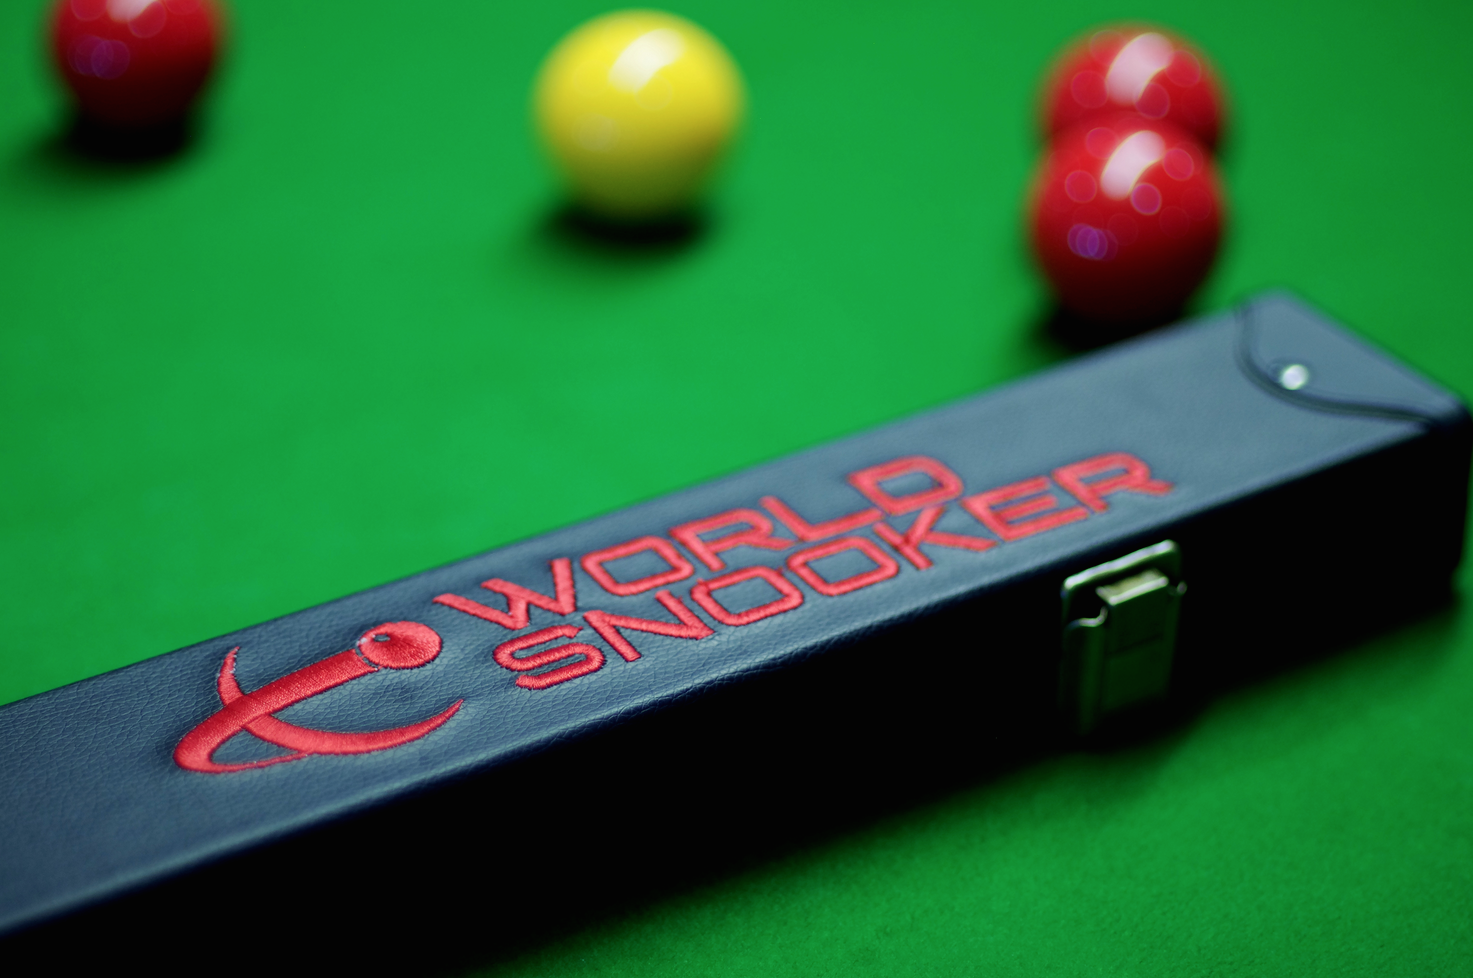 Home - World Snooker